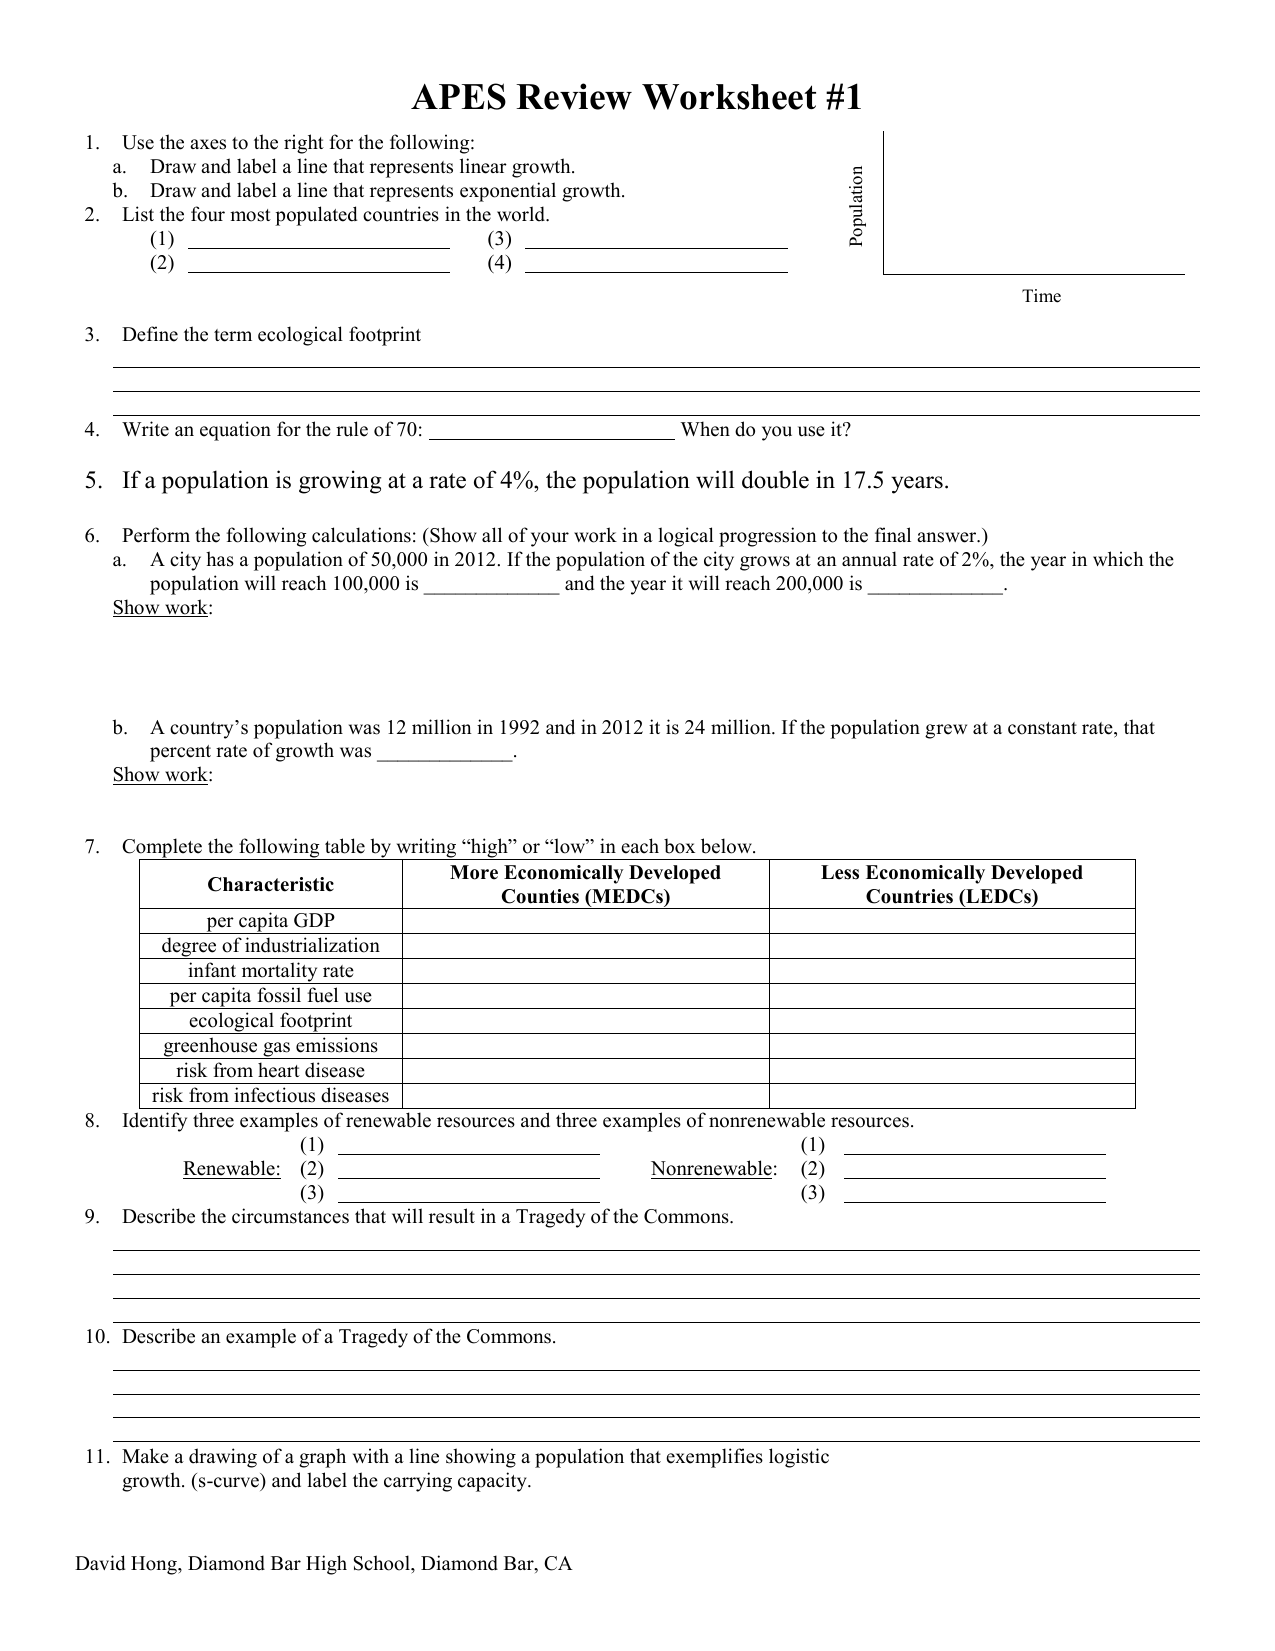 Ecology Review Worksheet 1 Answers